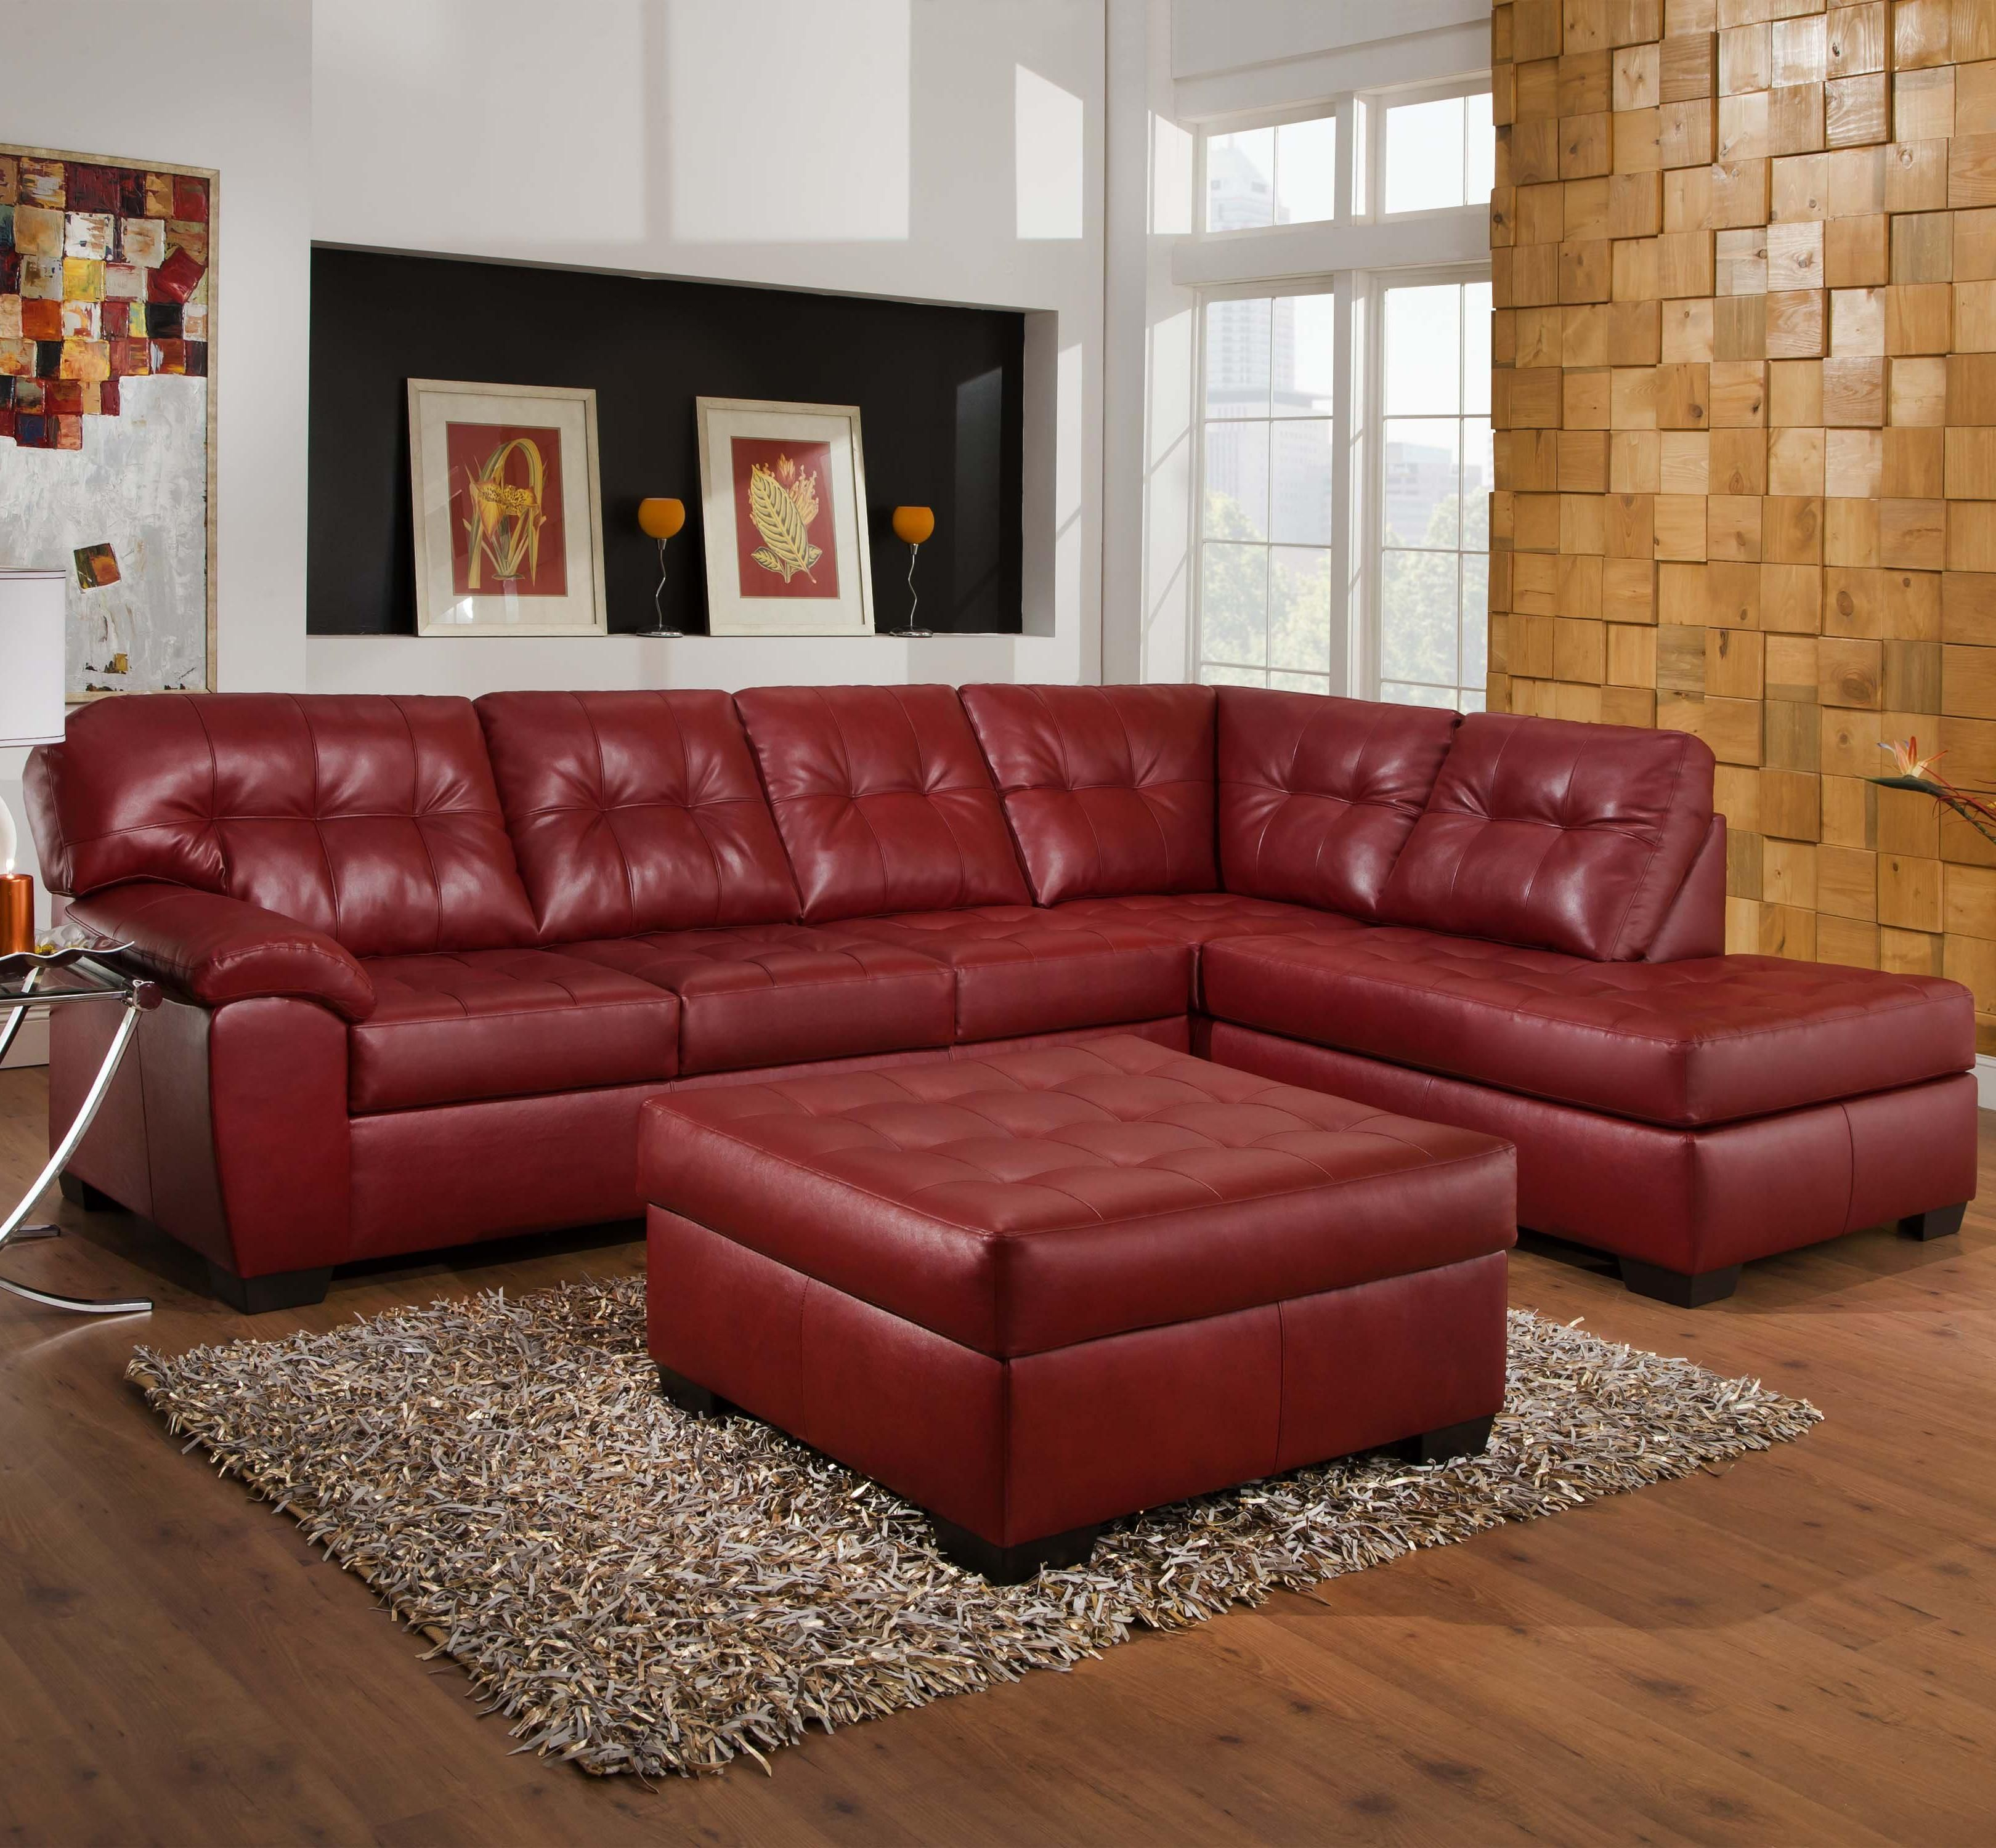 9569 2 Piece Sectional with Tufted Seats & Back by Simmons